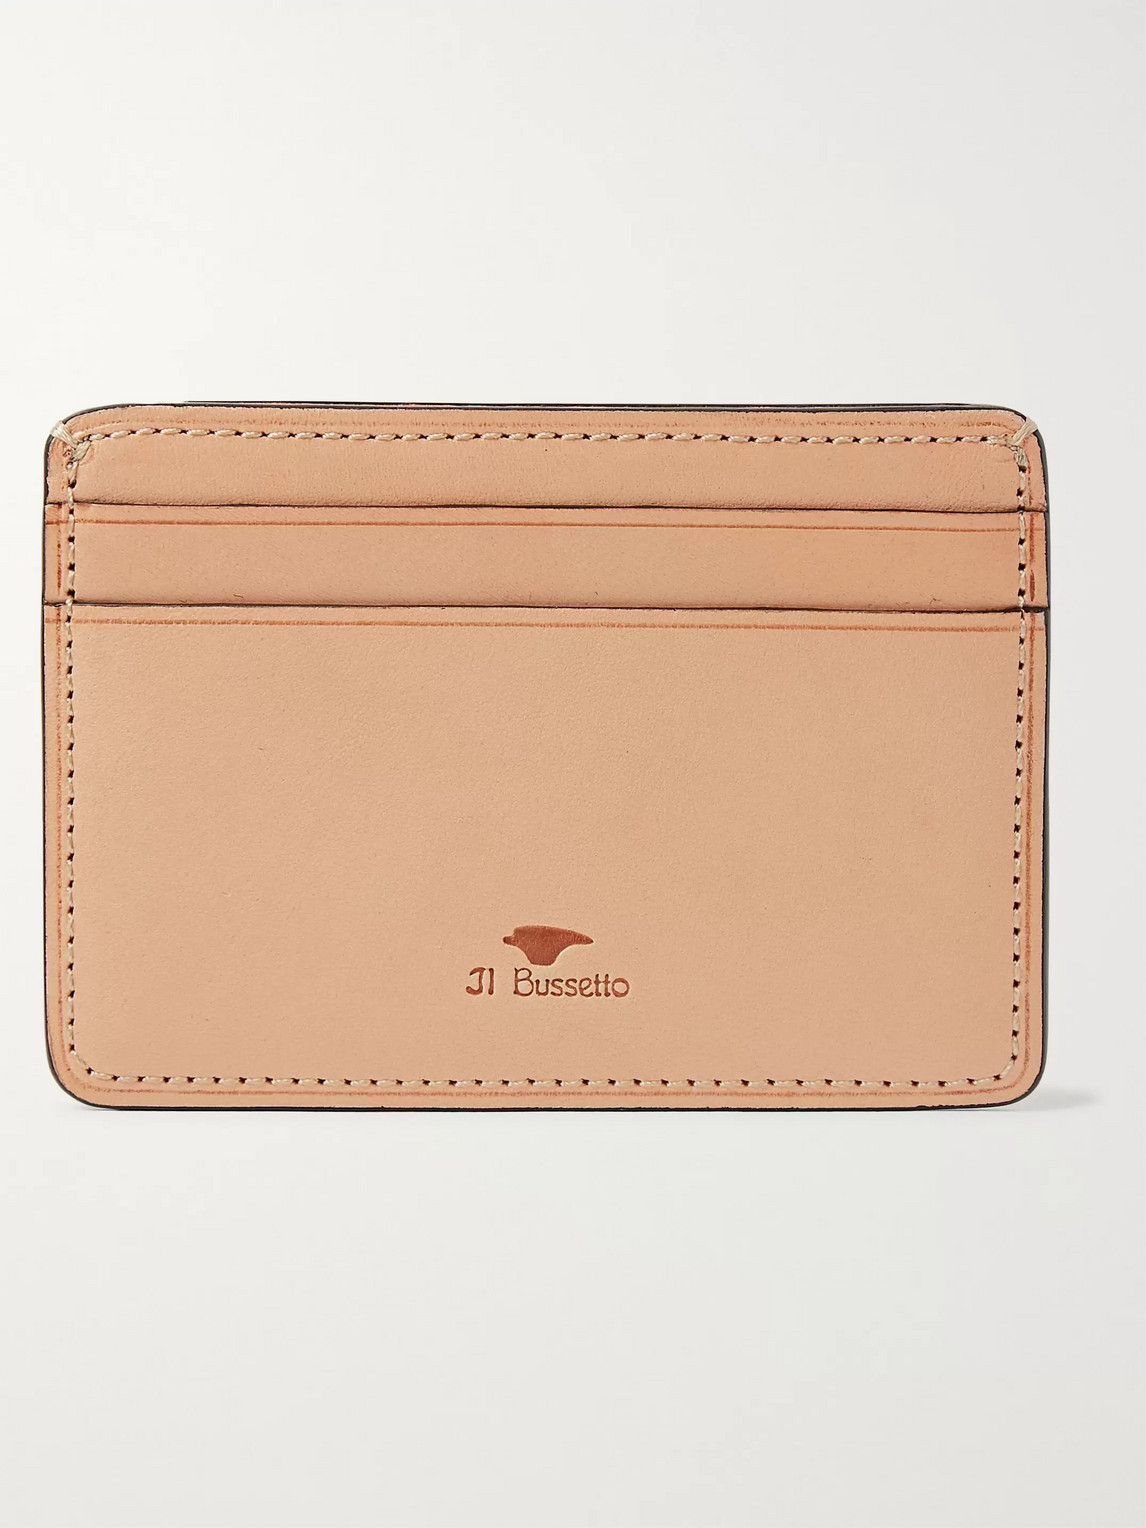 Il Bussetto Polished-leather Cardholder In Orange